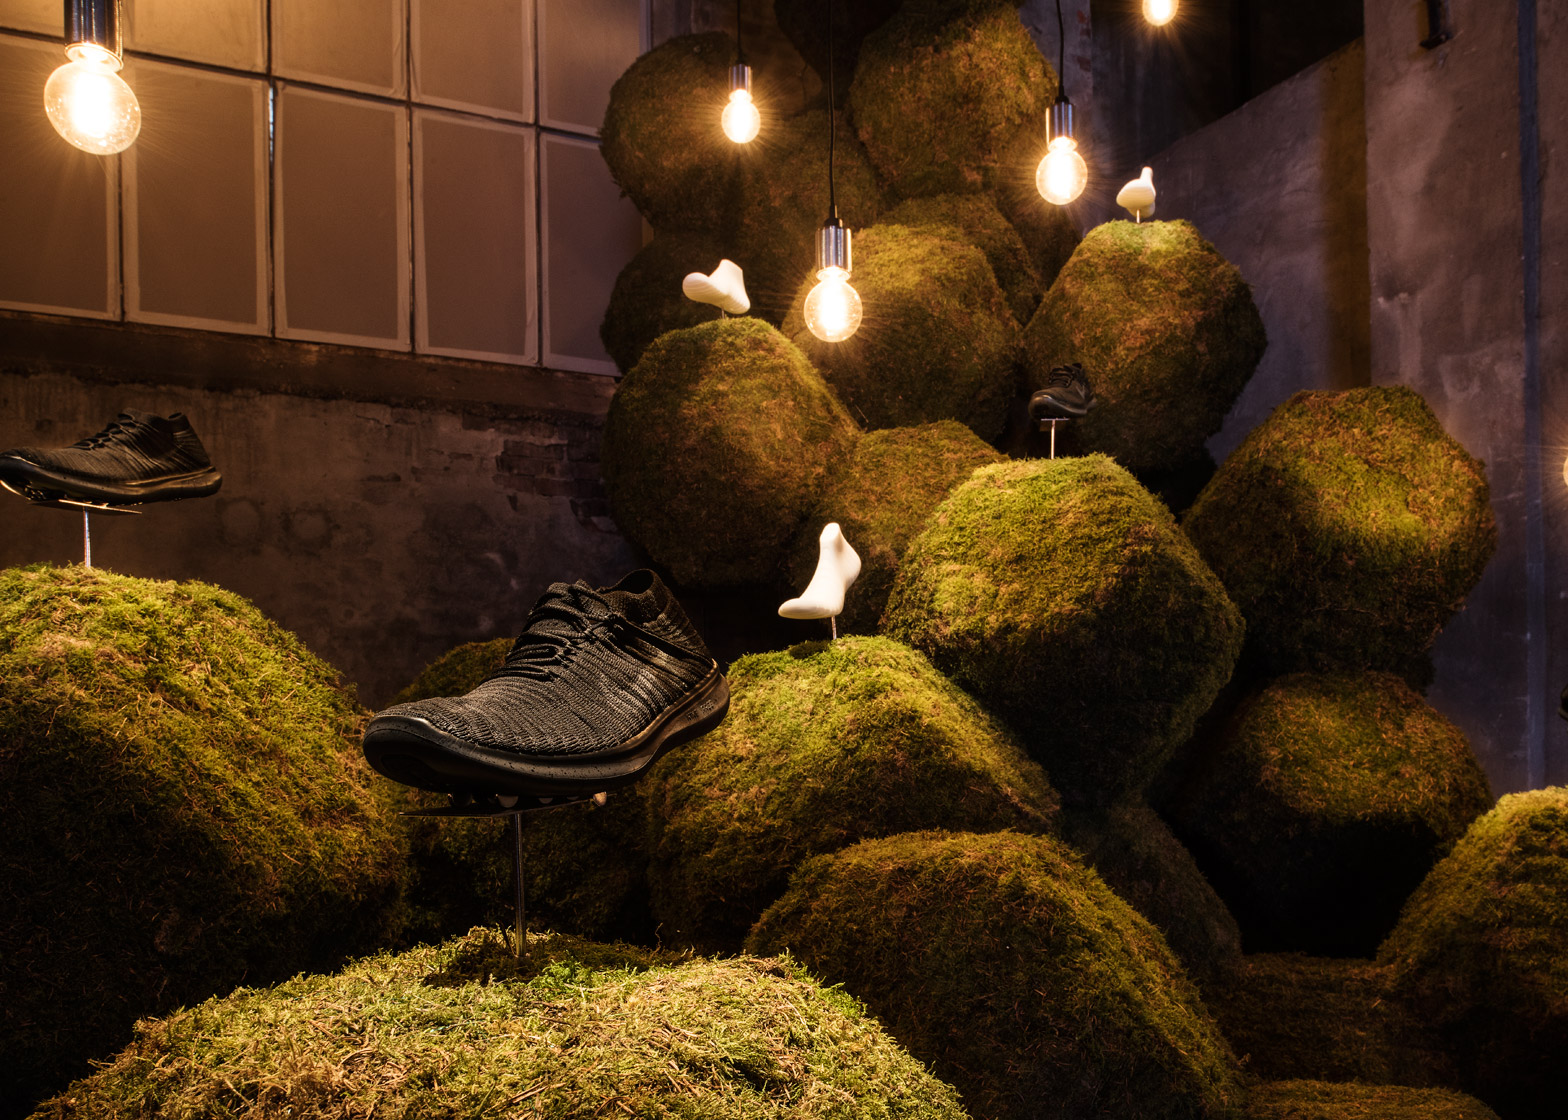 The Nature of Motion exhibition by Nike